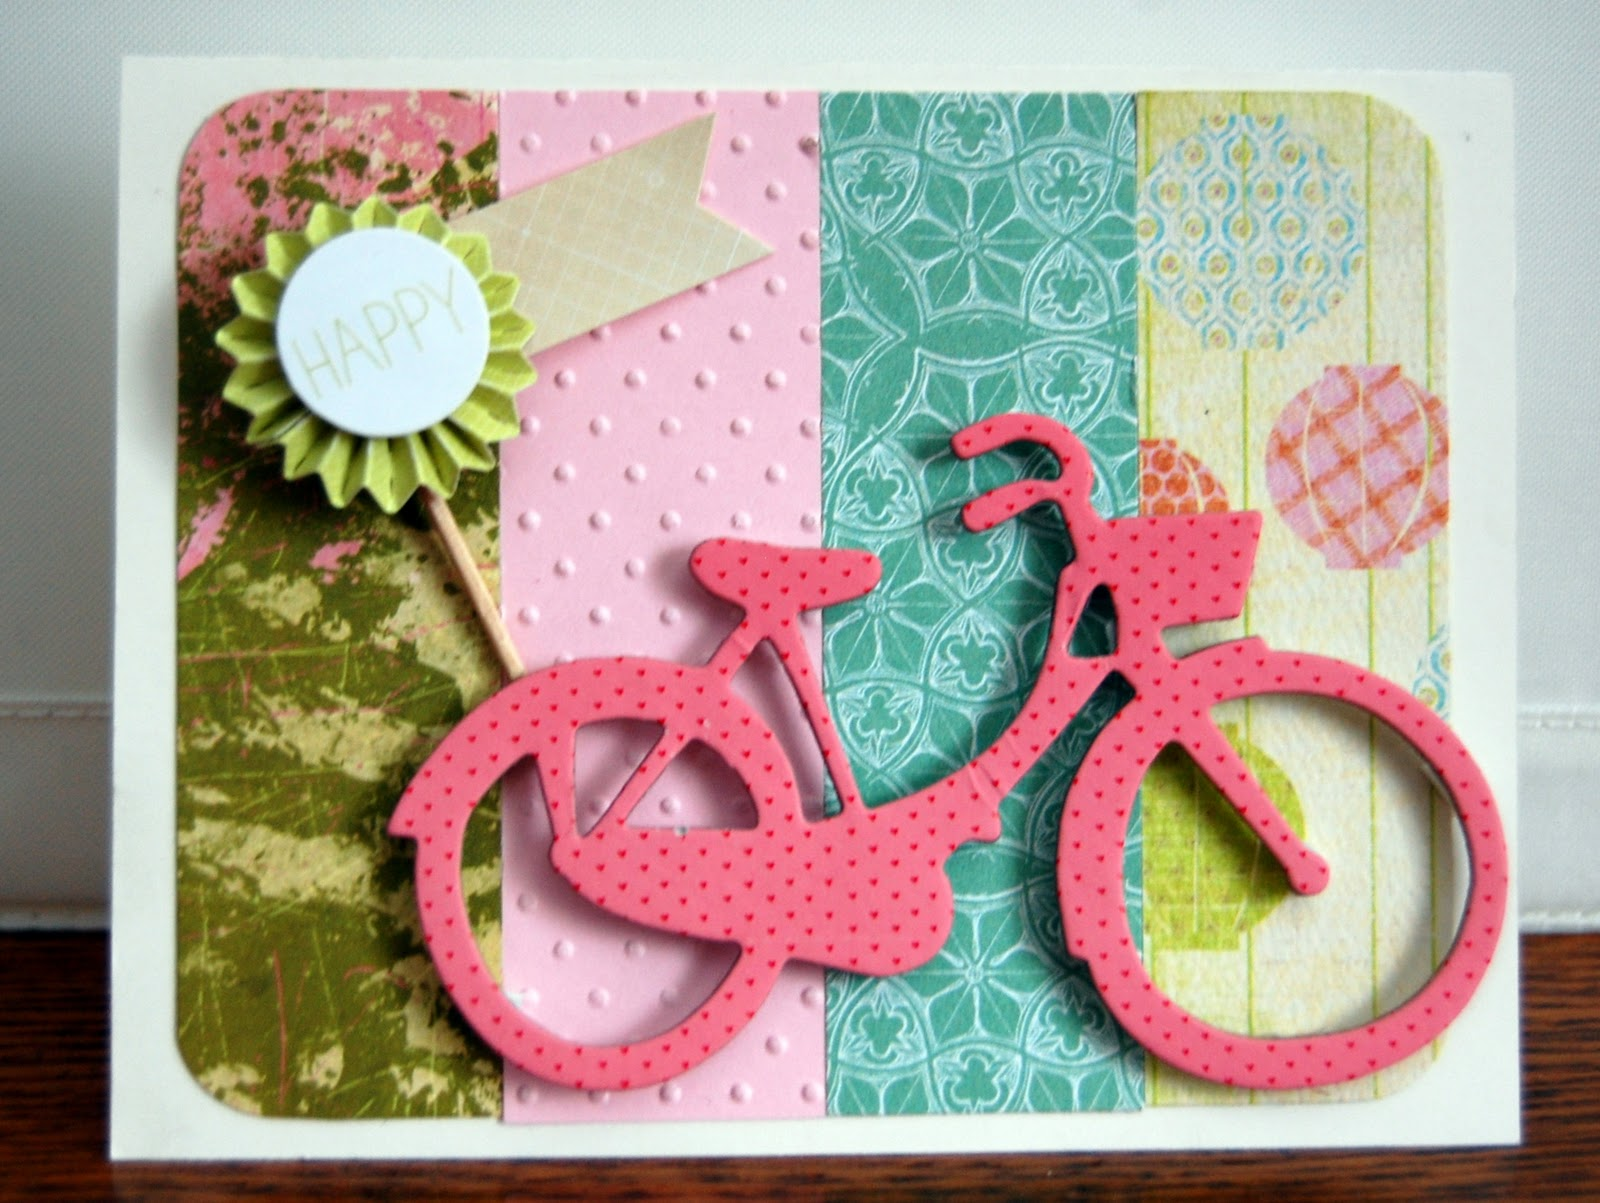 How to design scrapbook using colored paper - The Paper Variety